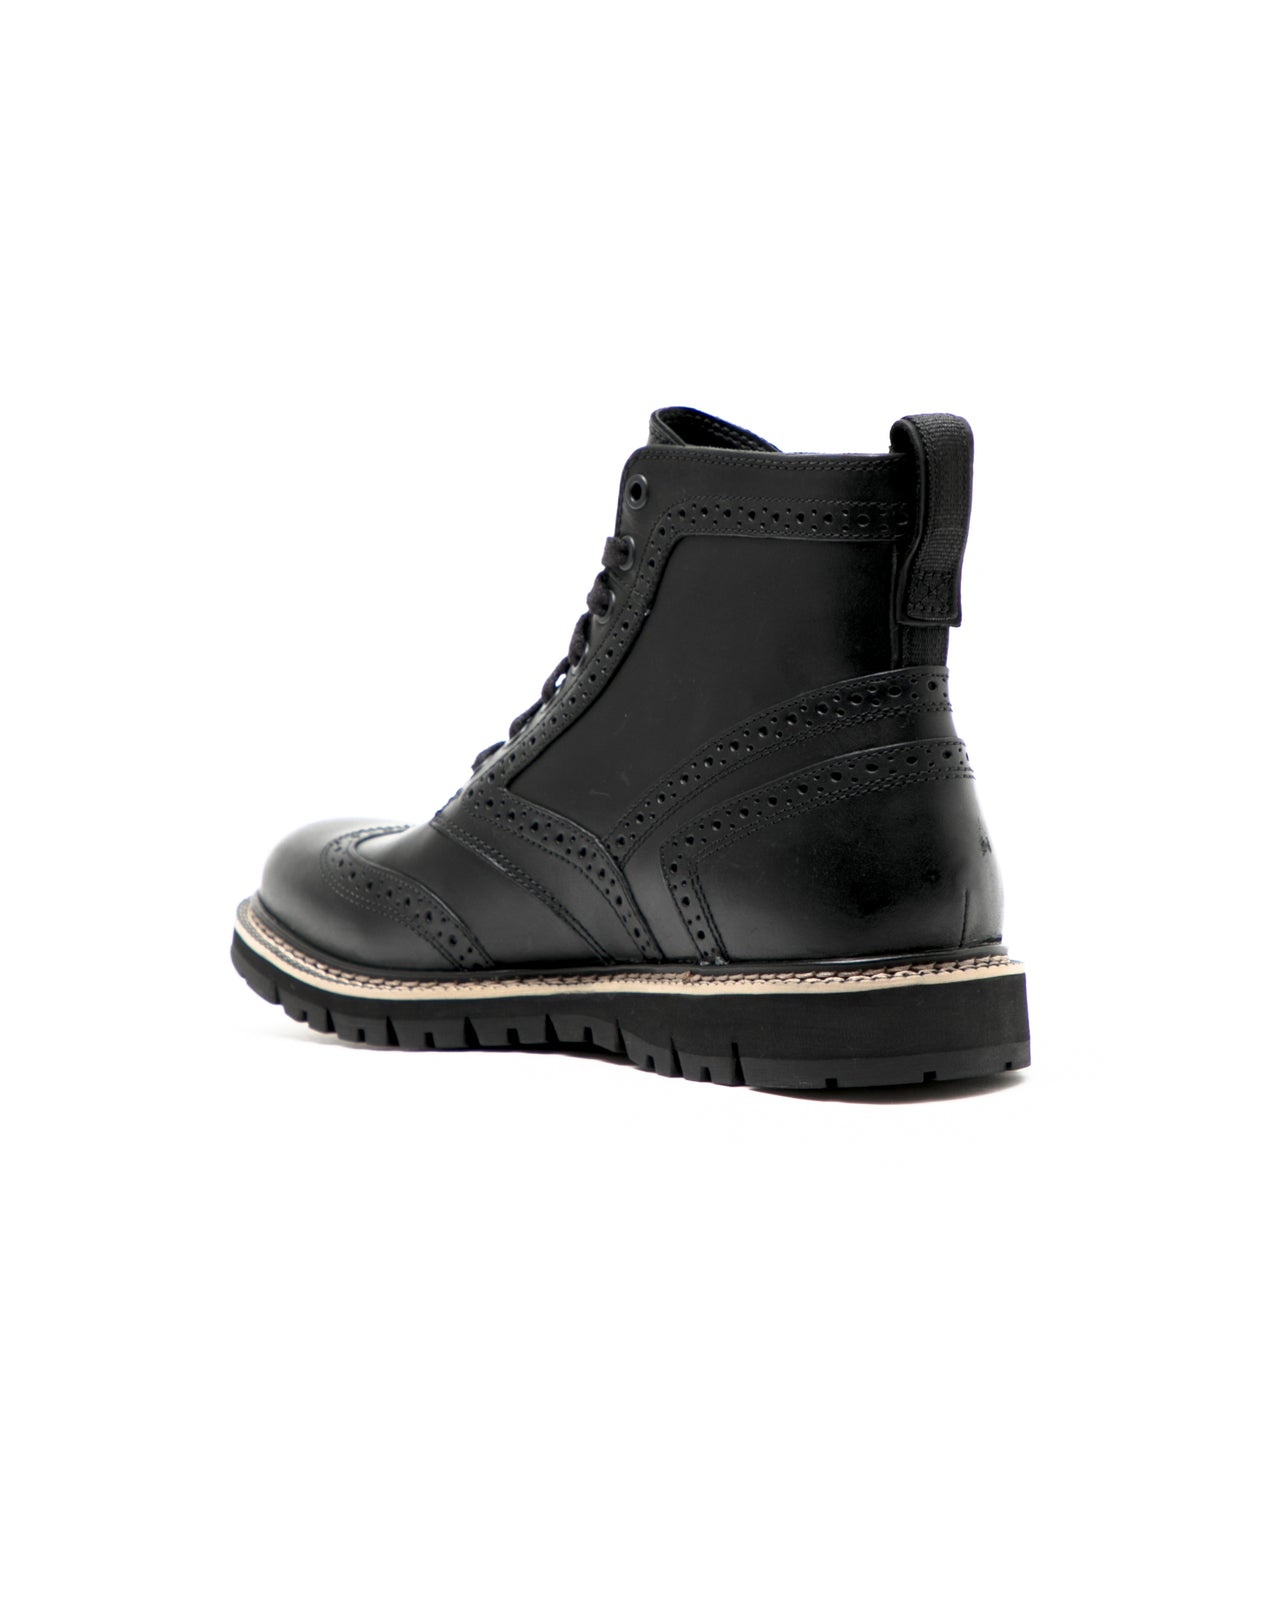 Britton Hill Wingtip Boot - Color: Black Full Grain Leather | Bla